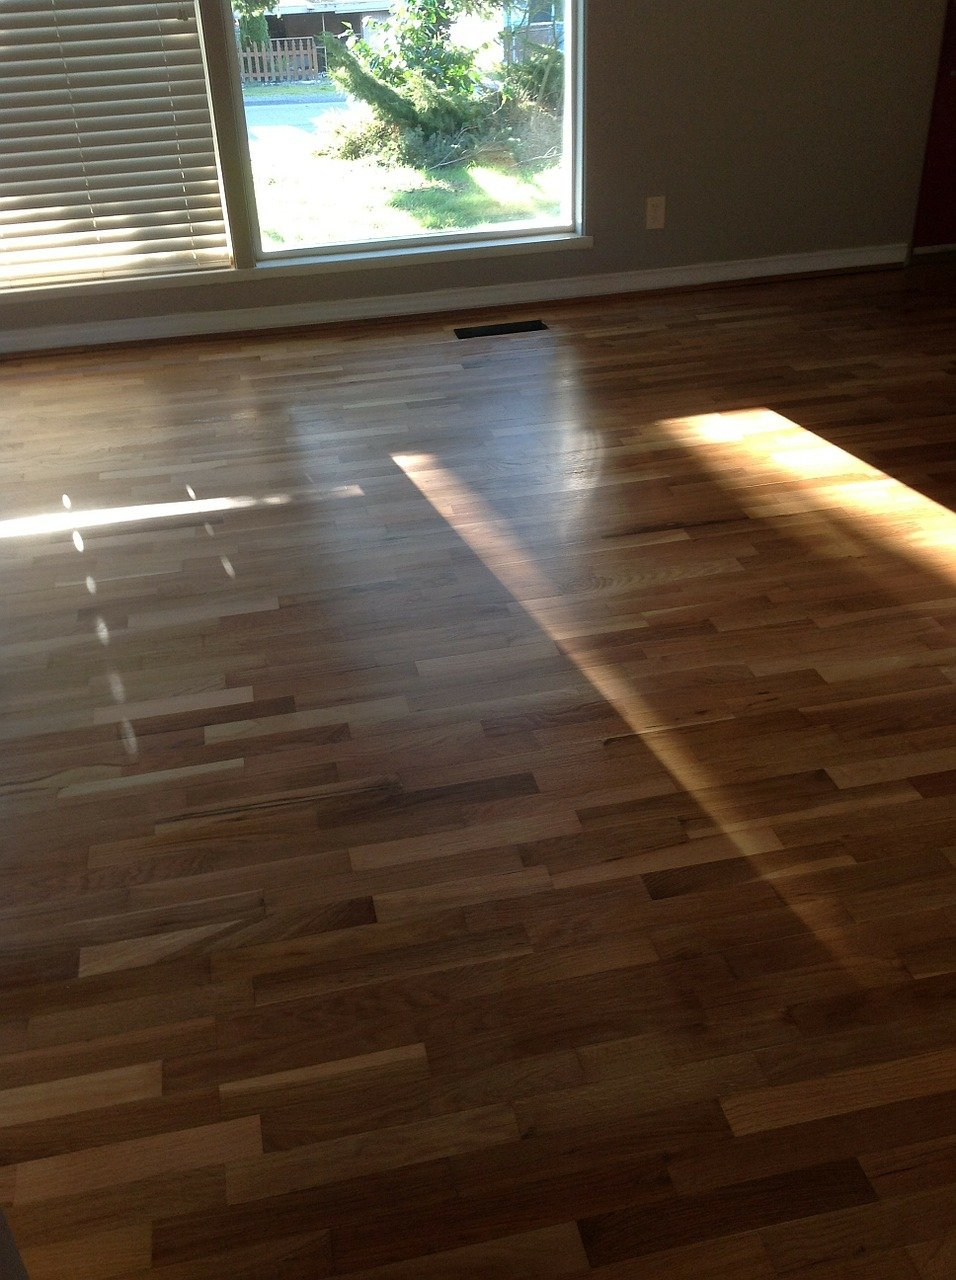 How Do I Find A Floor Stripping Service